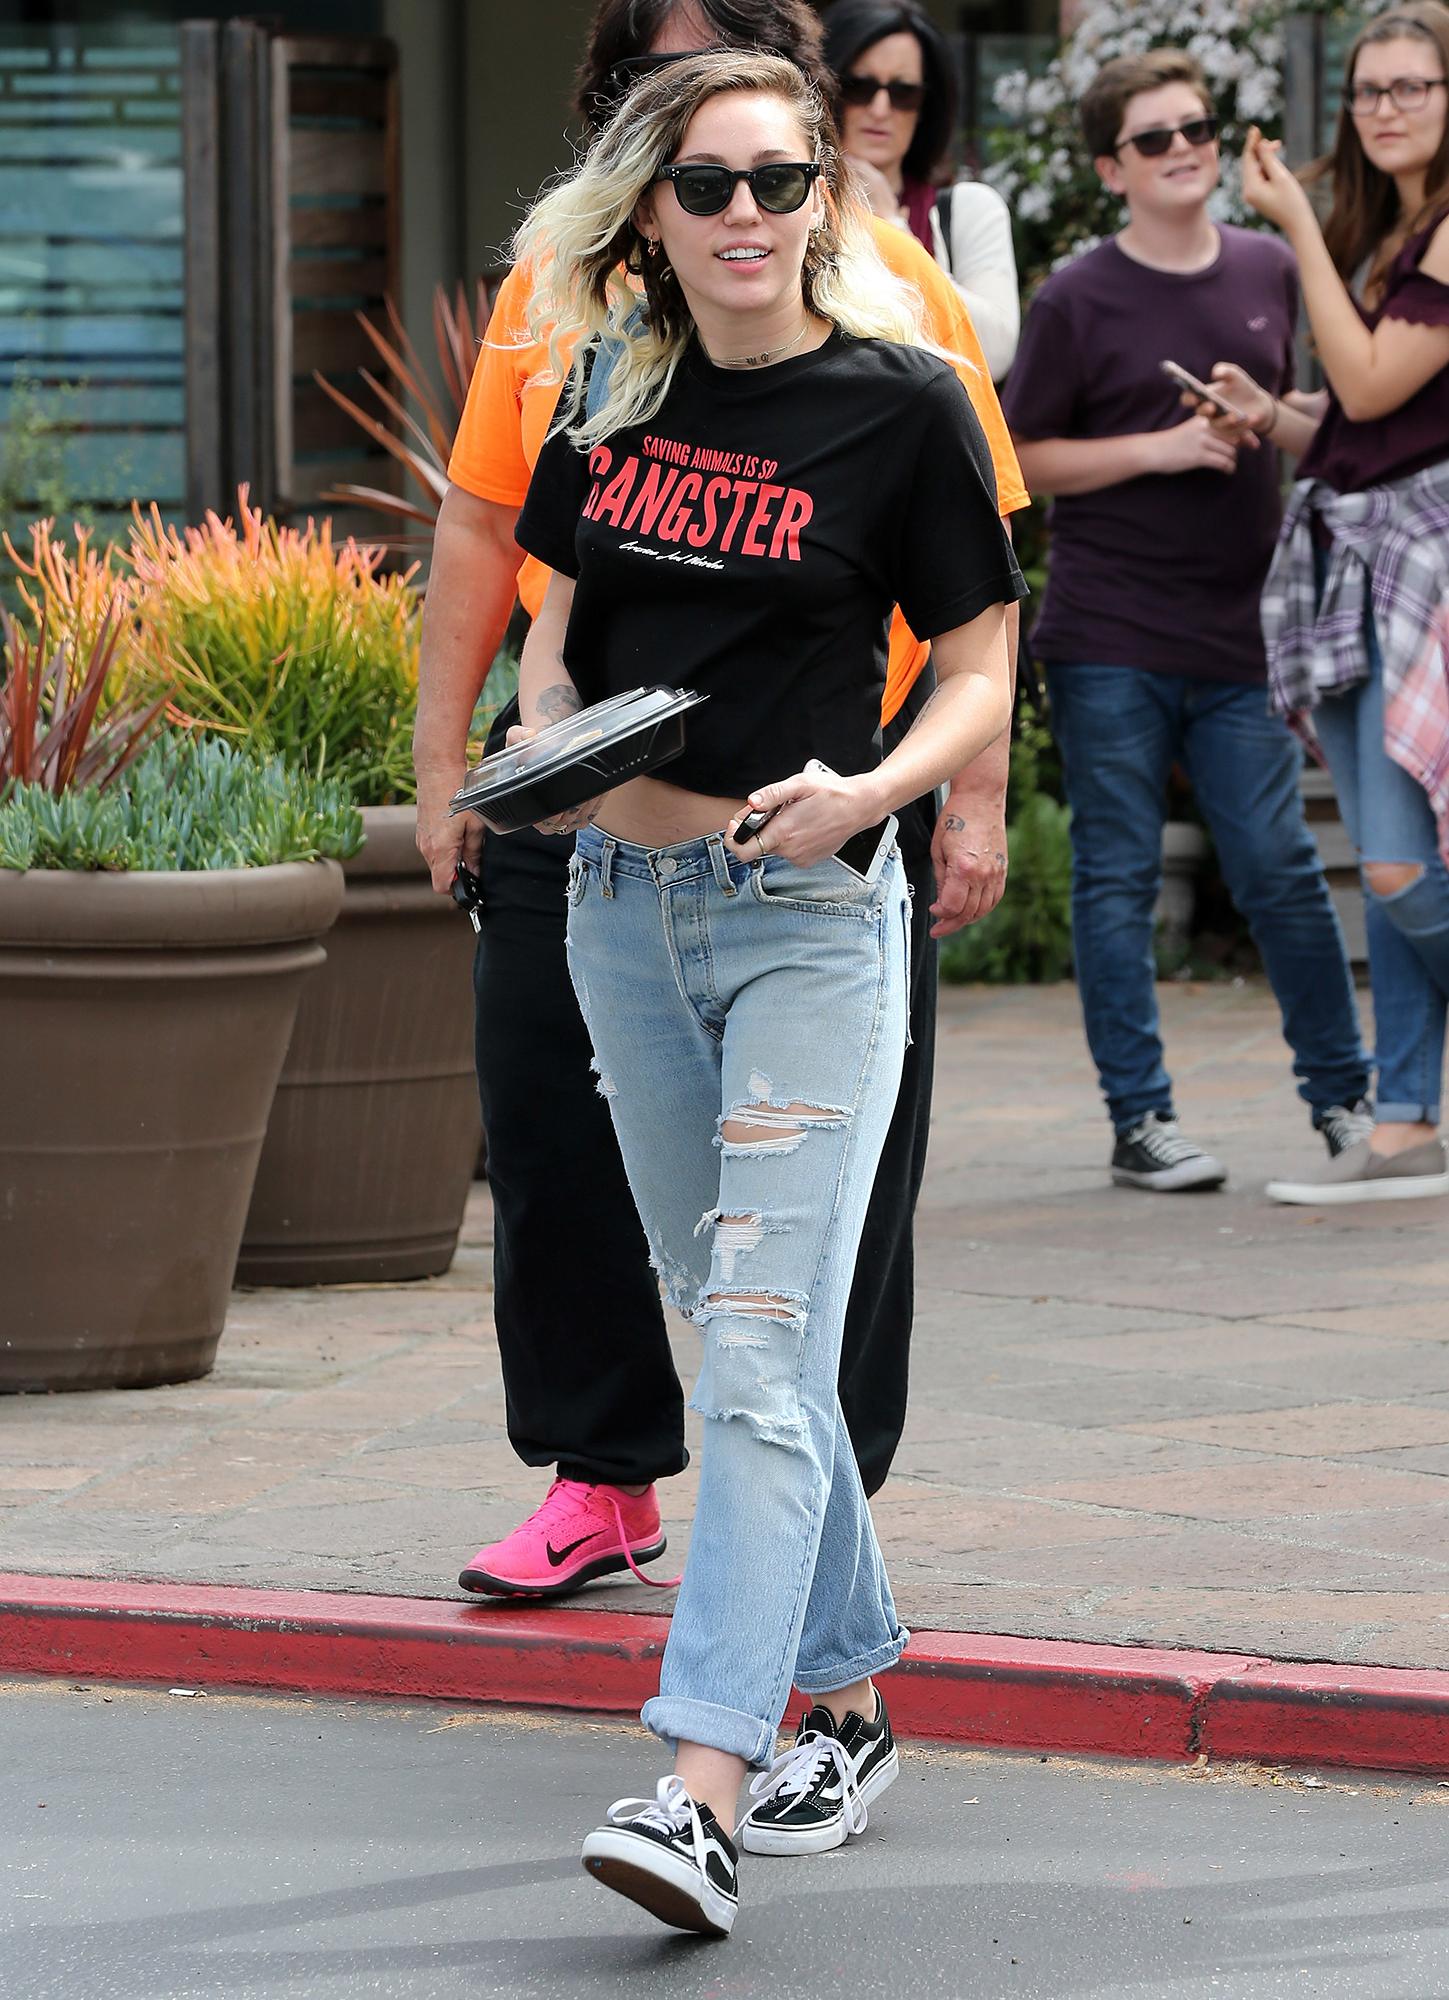 Miley Cyrus leaving a restaurant in Malibu with her engagement ring on show